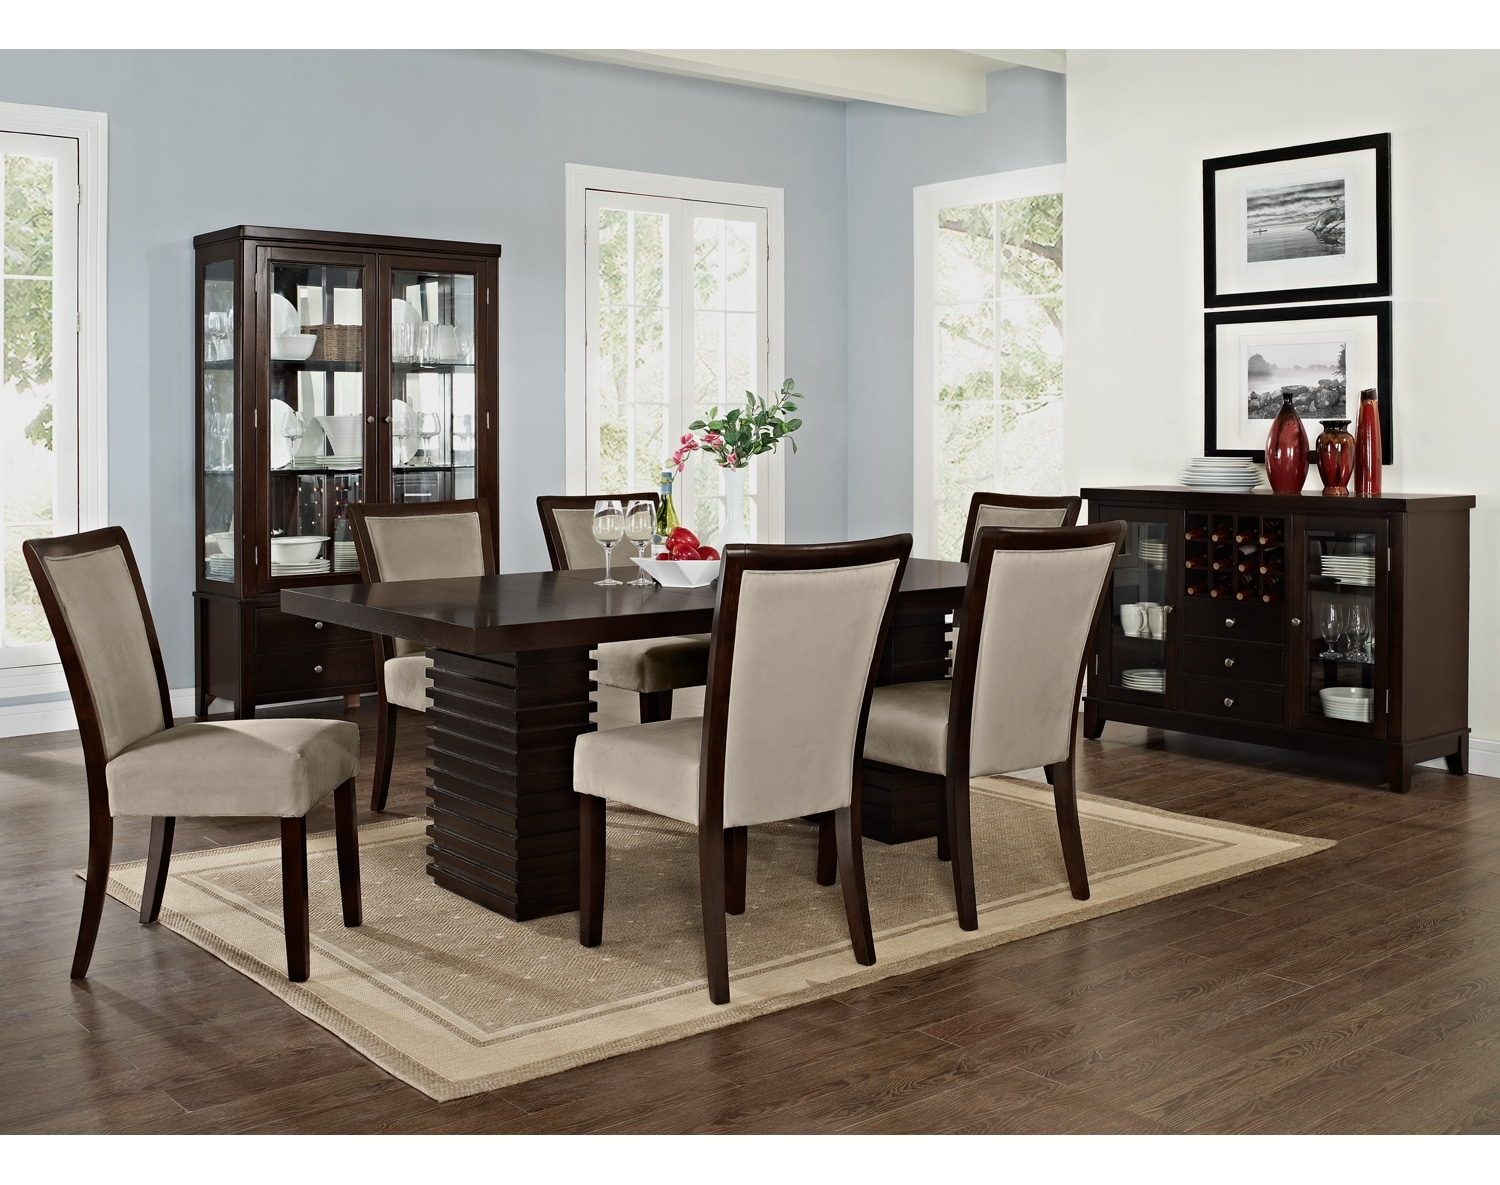 Dining Room Furniture - The Costa Karmon Stone Collection - Table